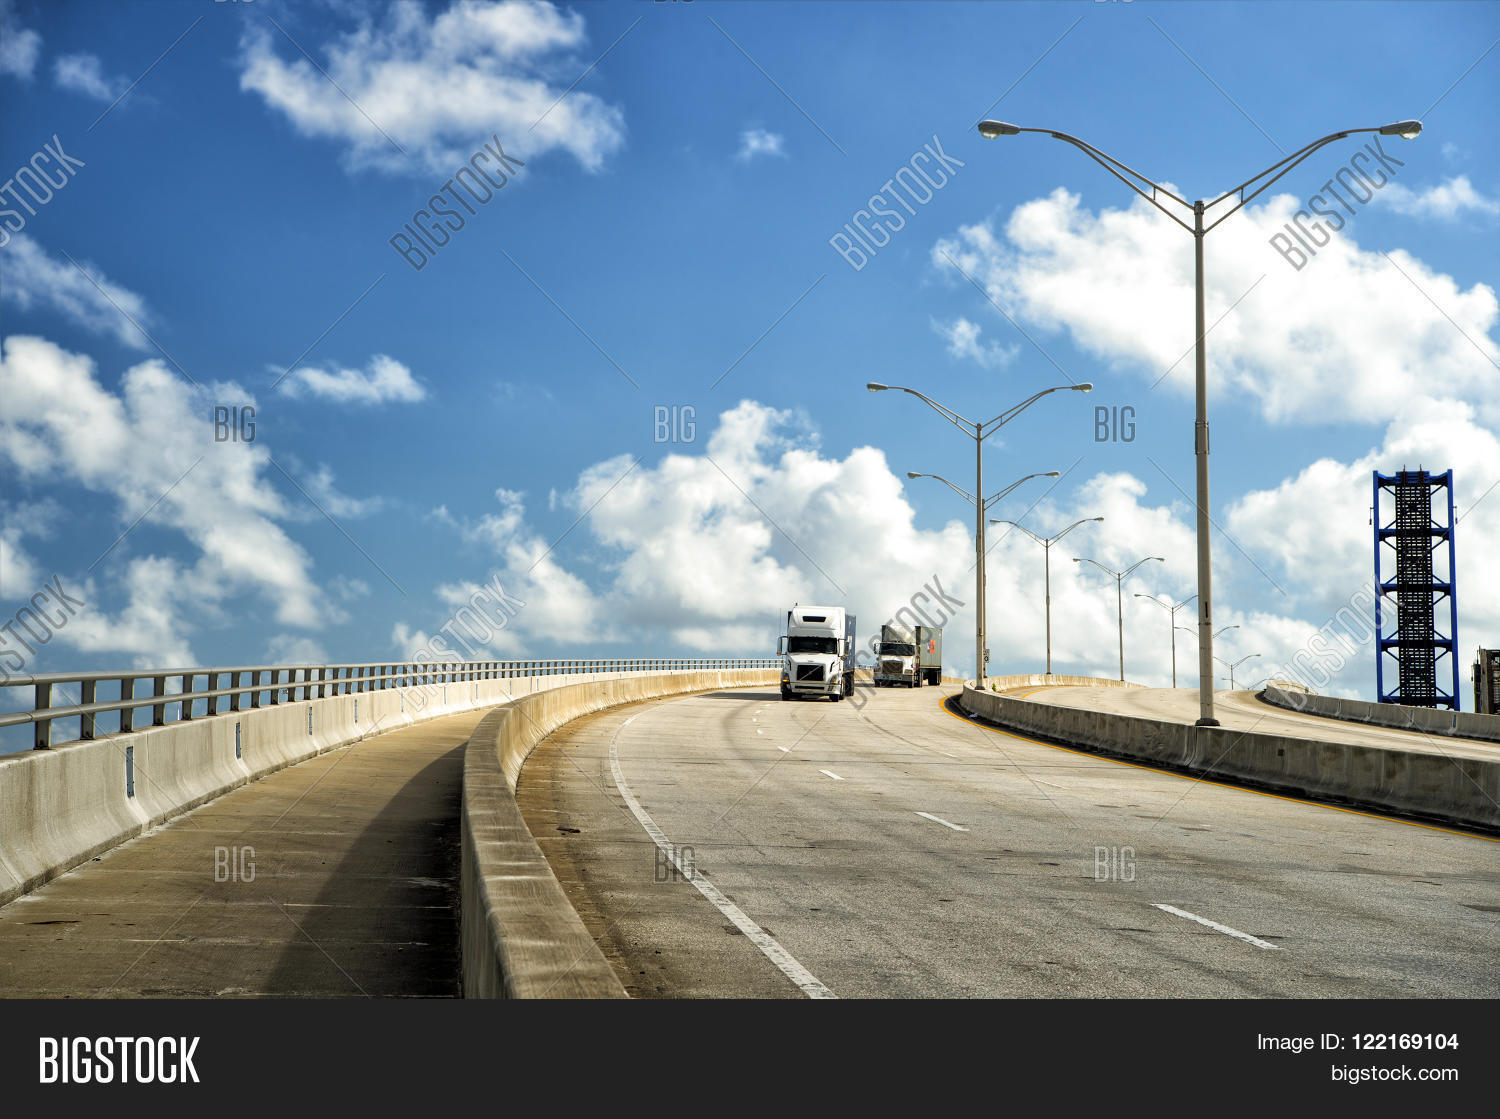 View On Highway Road With Two Transit Lorry Street Lamps Outdoor Sunny Weather Cloudy Blue